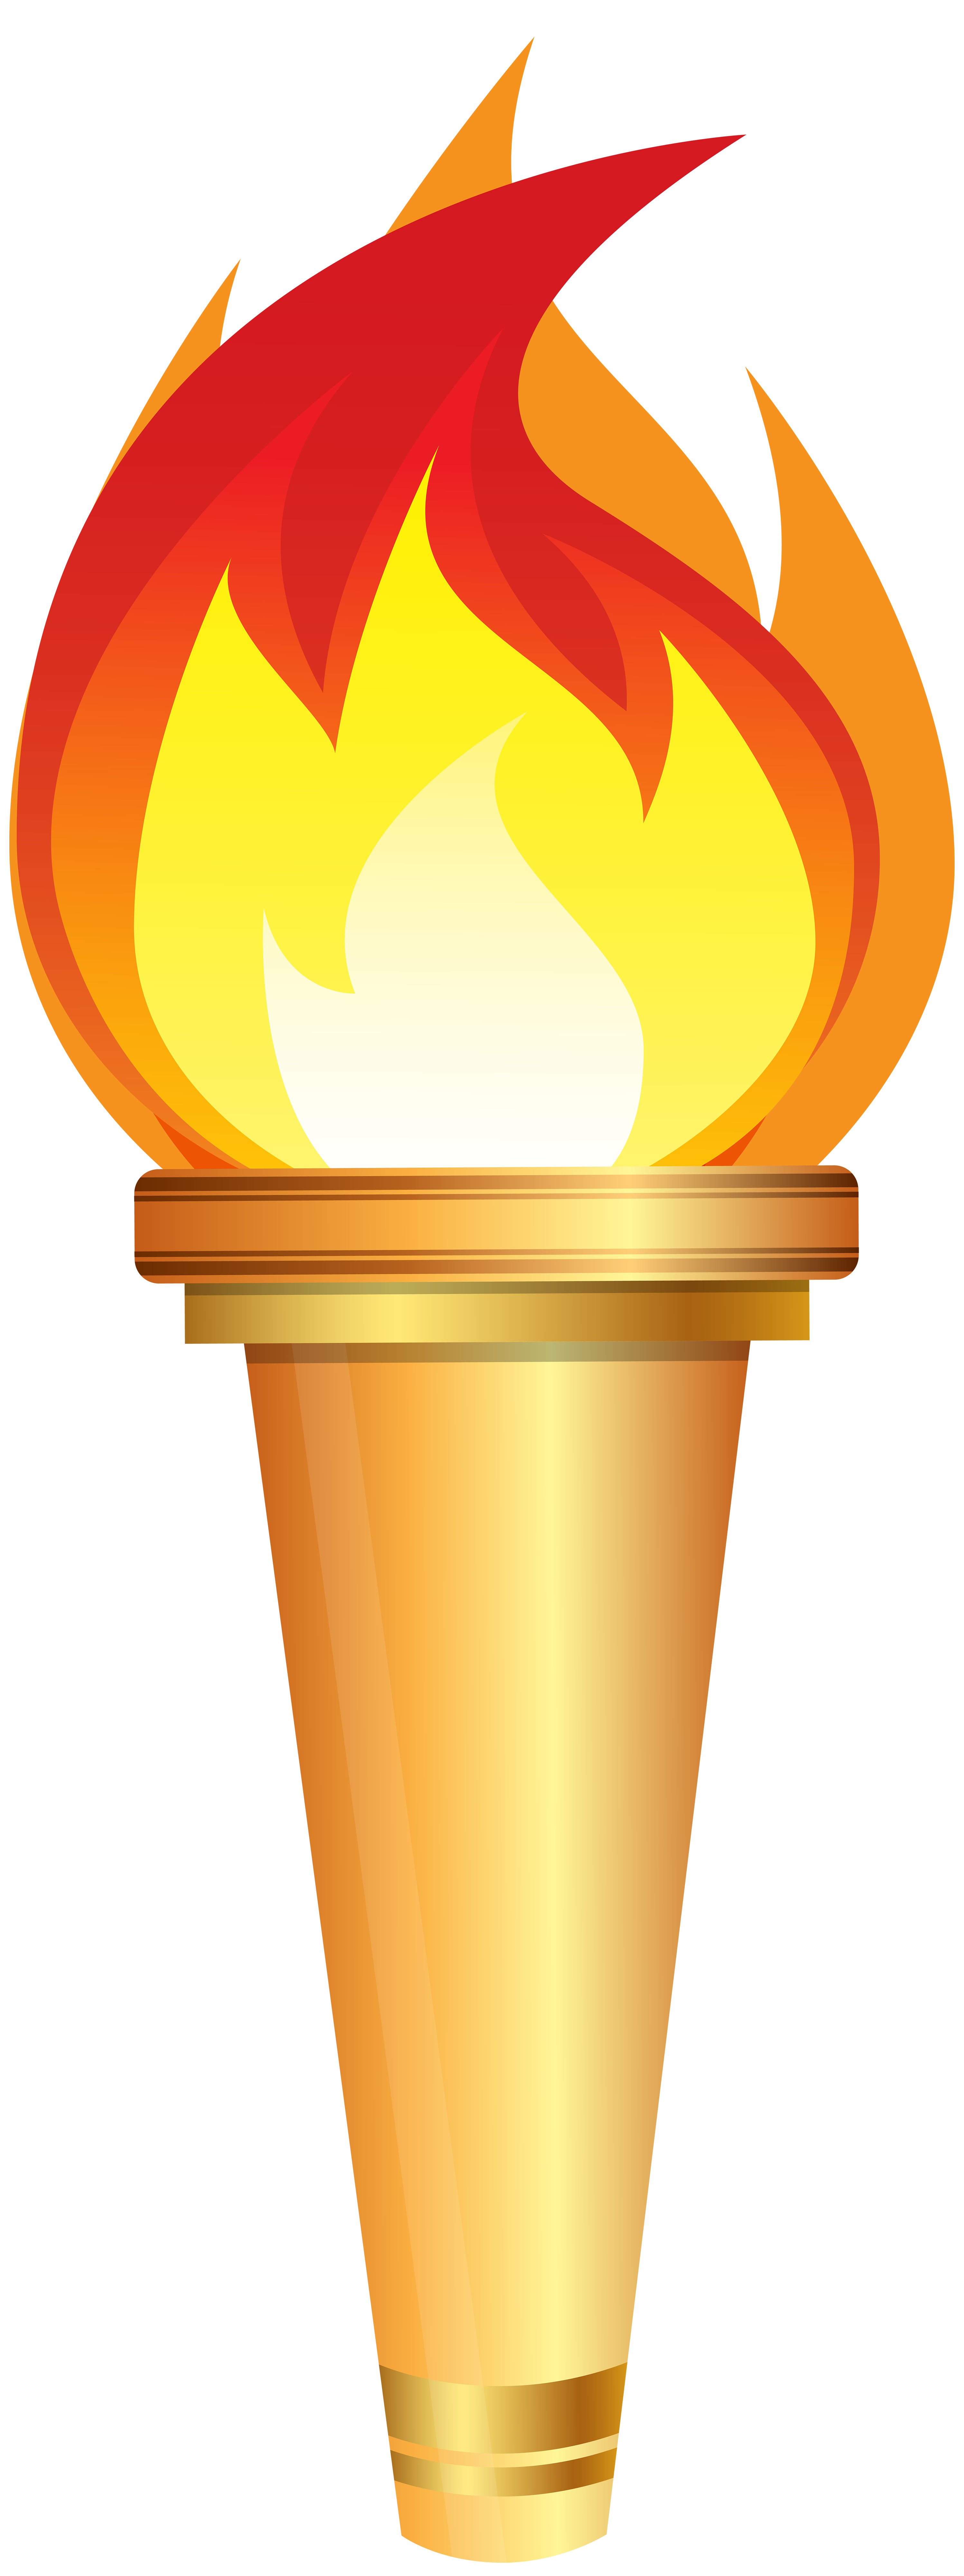 28   Amazing Fire Torch for Fire Torch Clipart  181obs